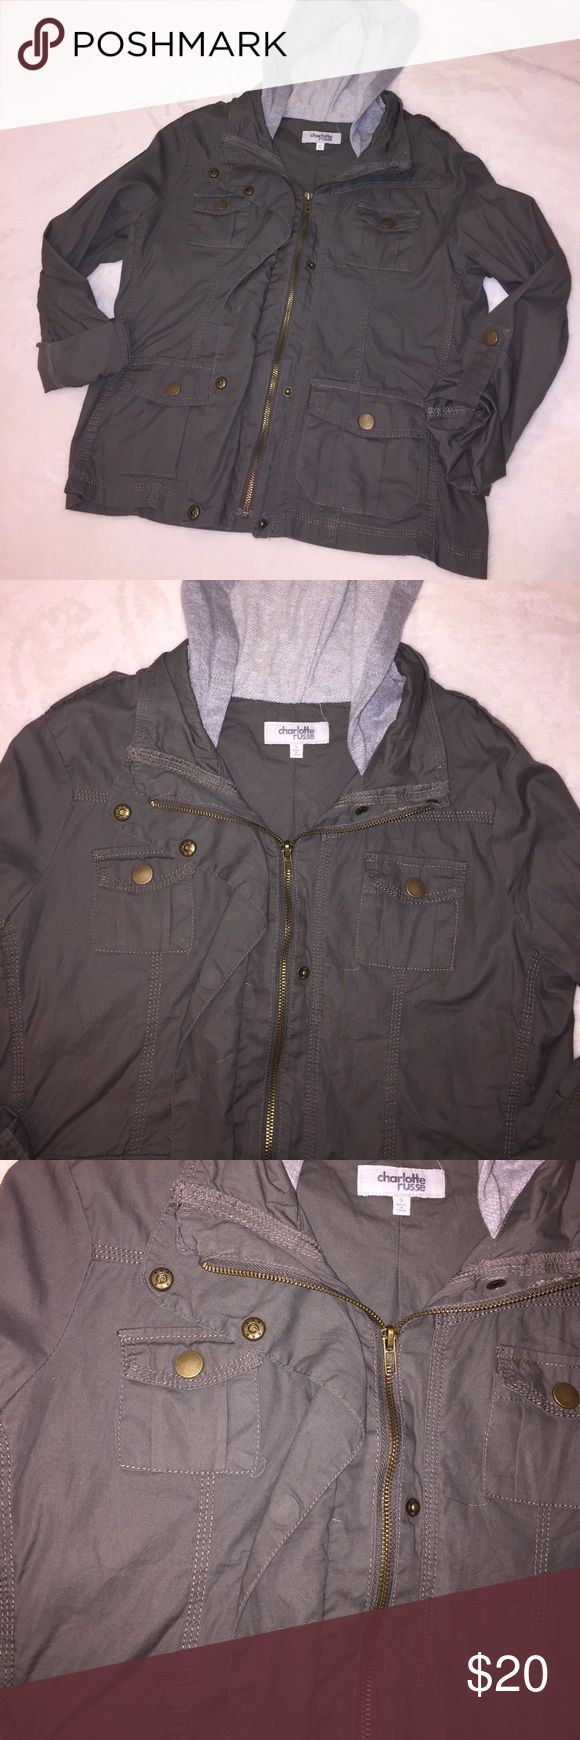 """NWOT women's utility jacket! NWOT adorable women's """"utility jacket"""" ~ size small ~ from Charlotte Russe Charlotte Russe Jackets & Coats Utility Jackets"""